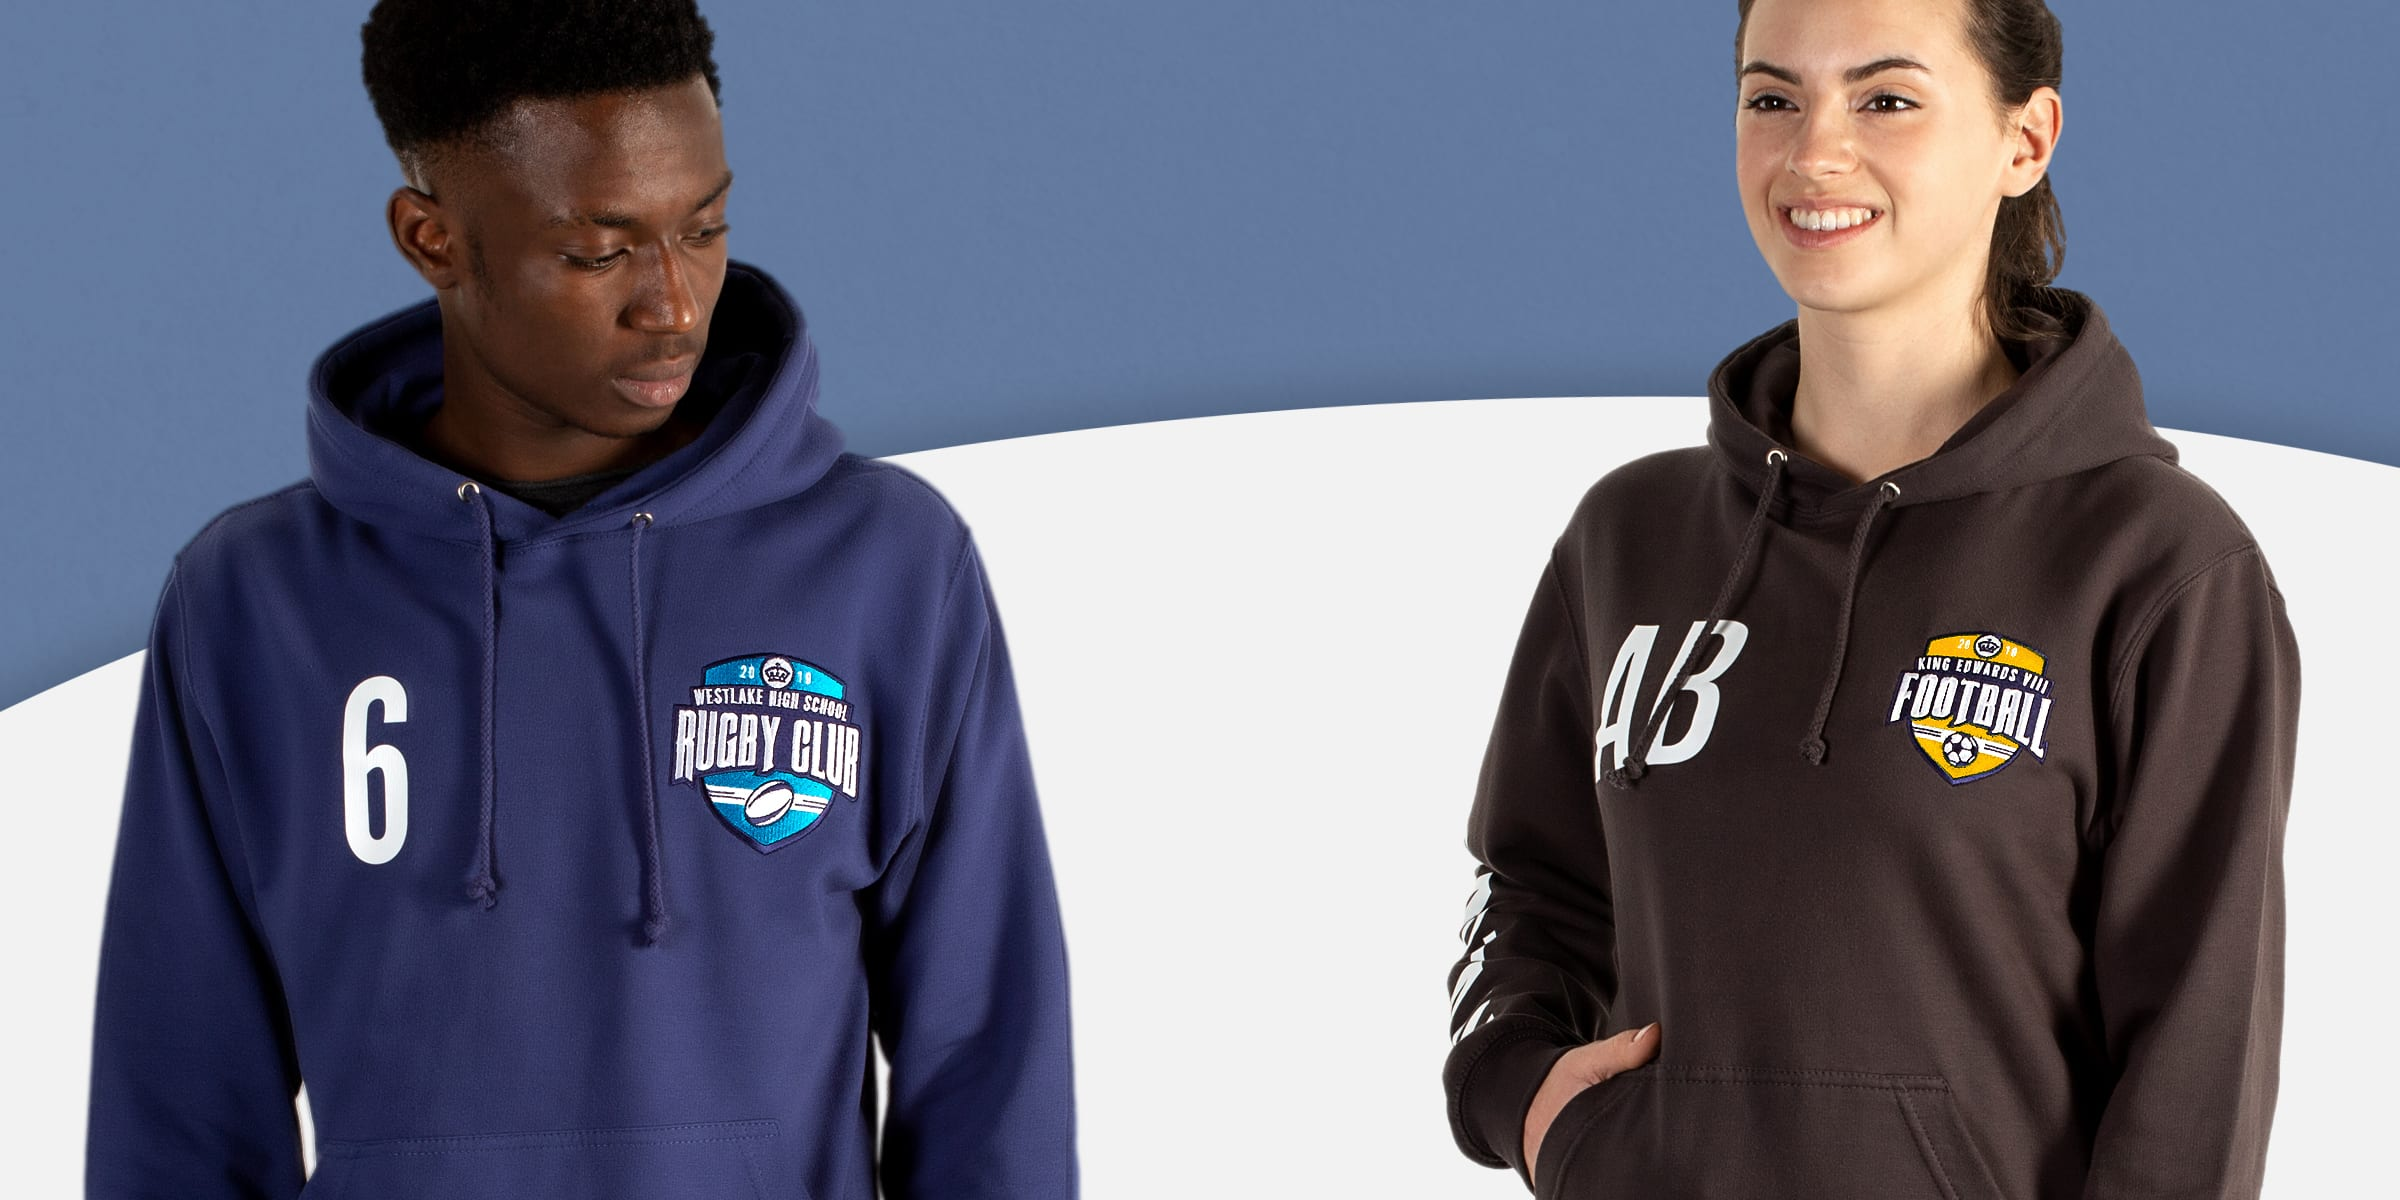 f0c76979 Sports teamwear hoodies and sweatshirts with names, nicknames, initials and  personalisation